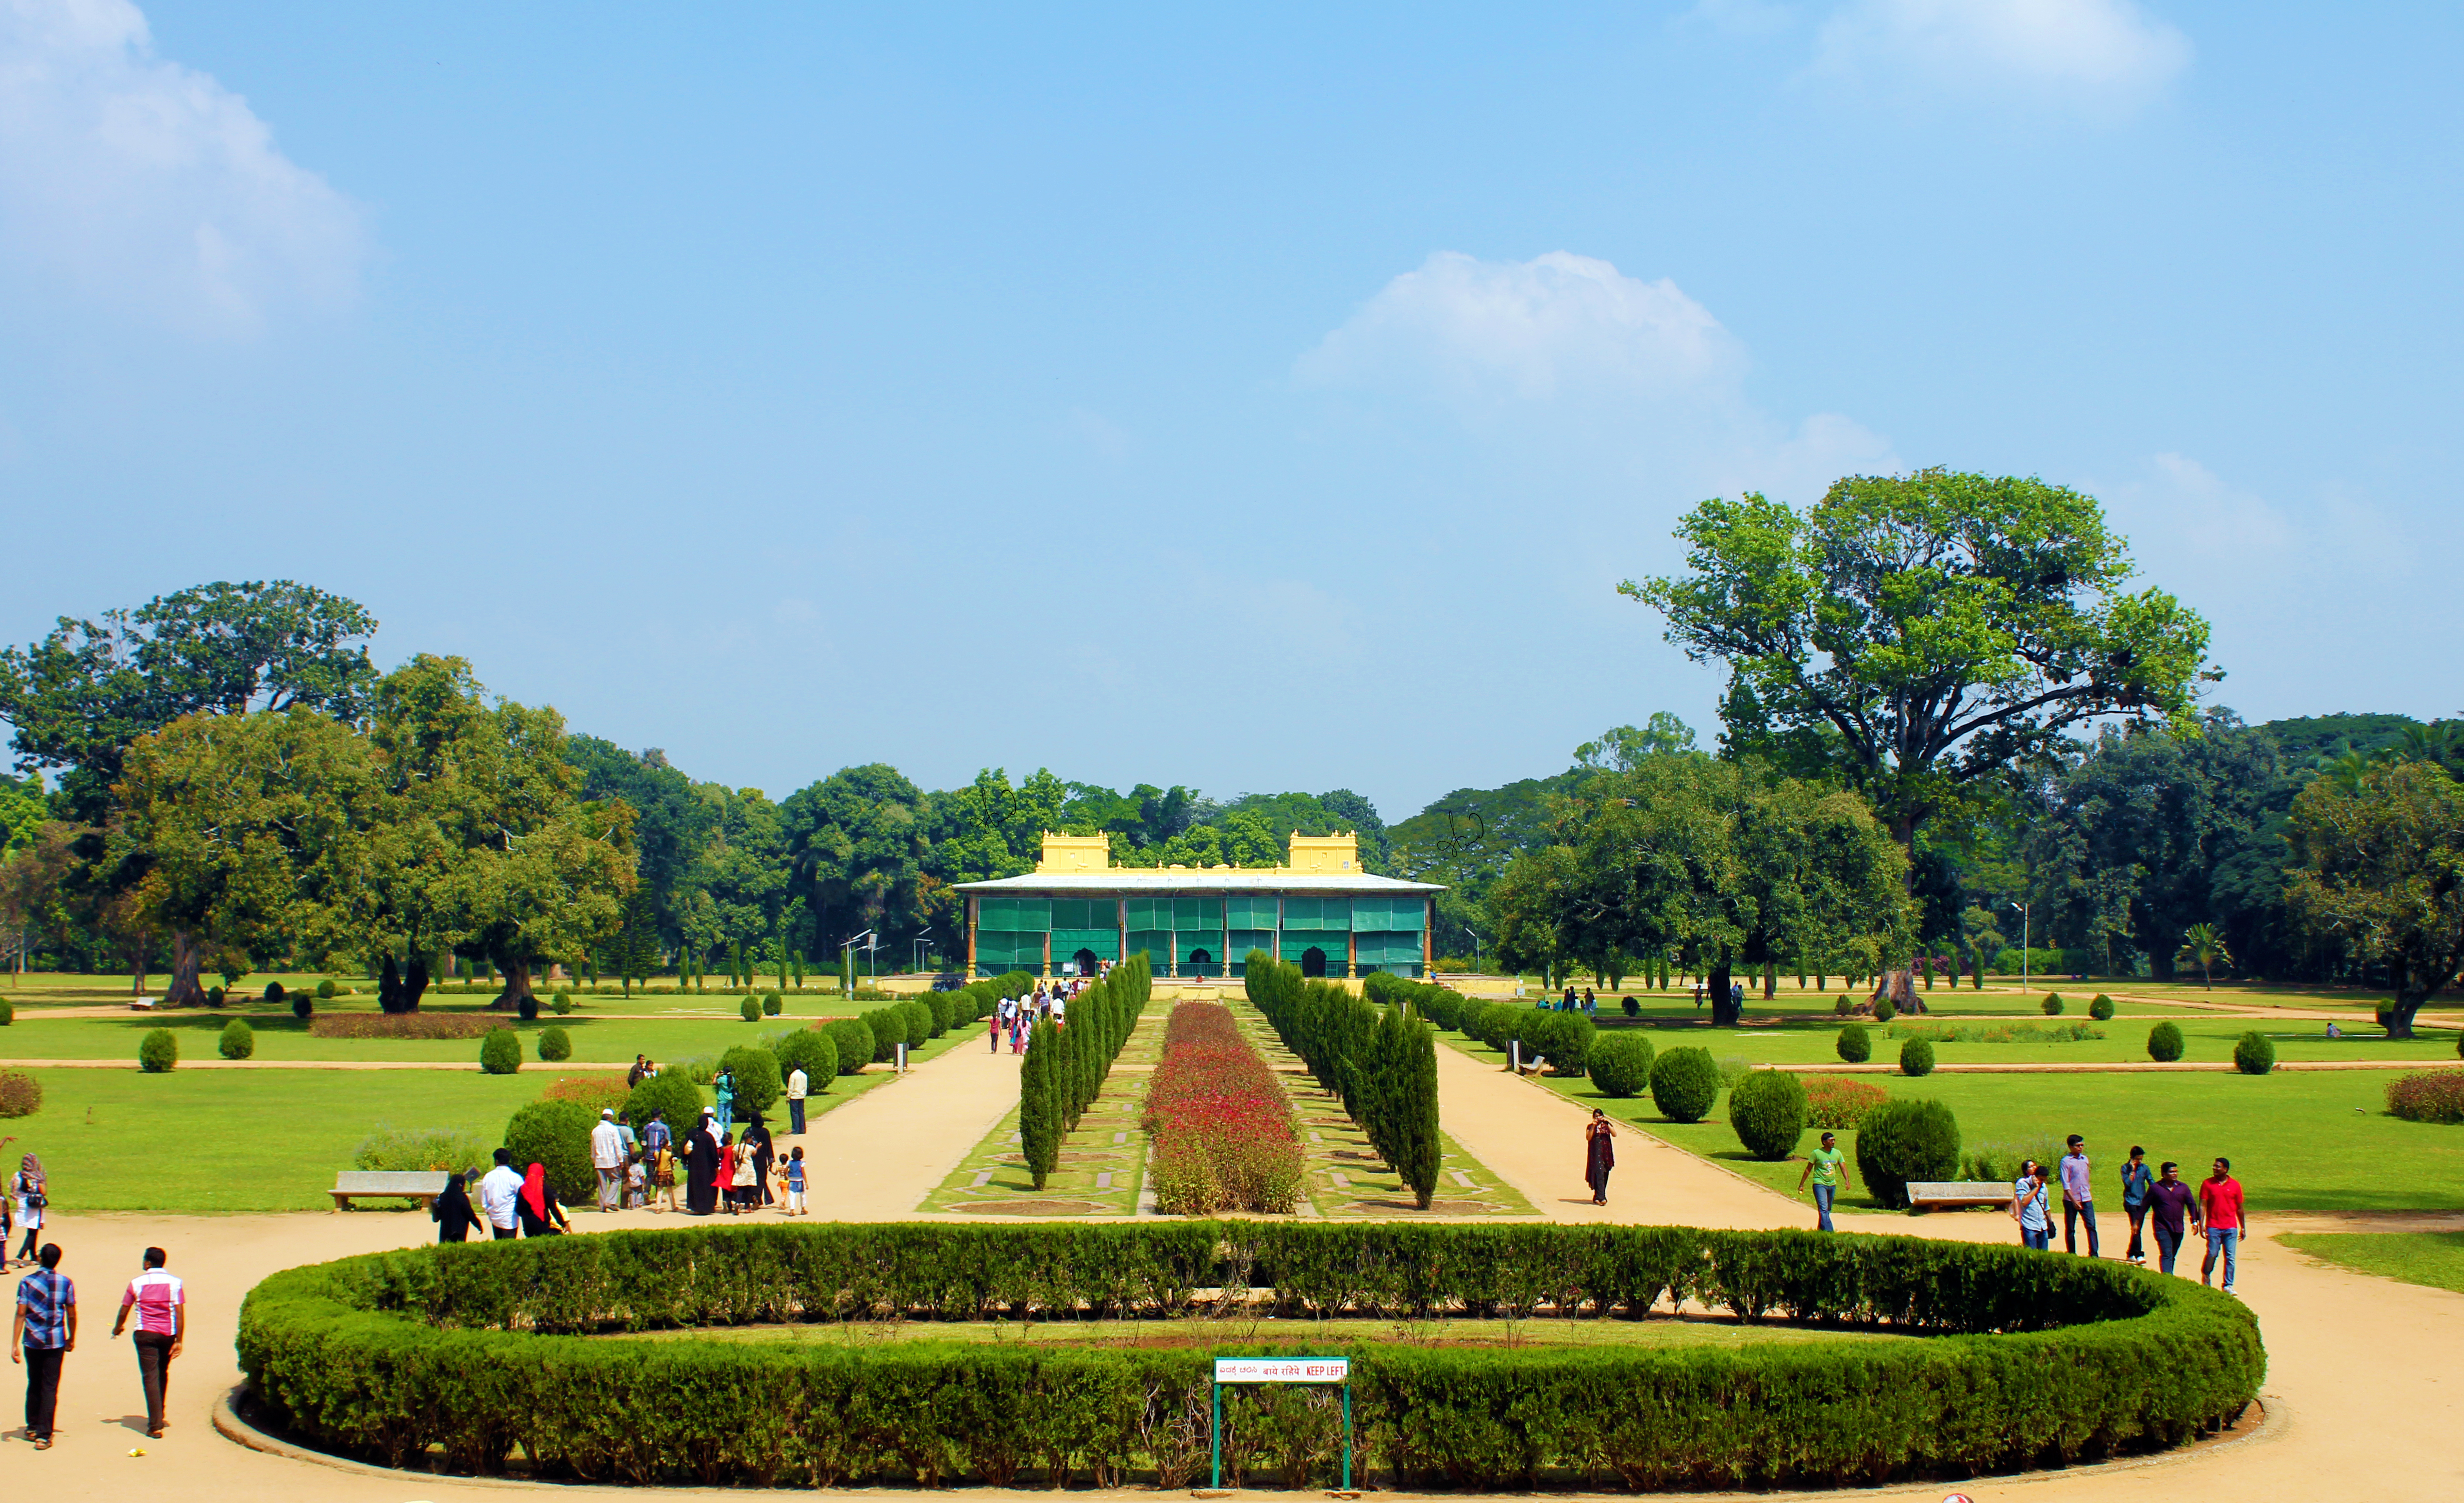 Daria Daulat Bagh or Garden of the Sea of Wealth